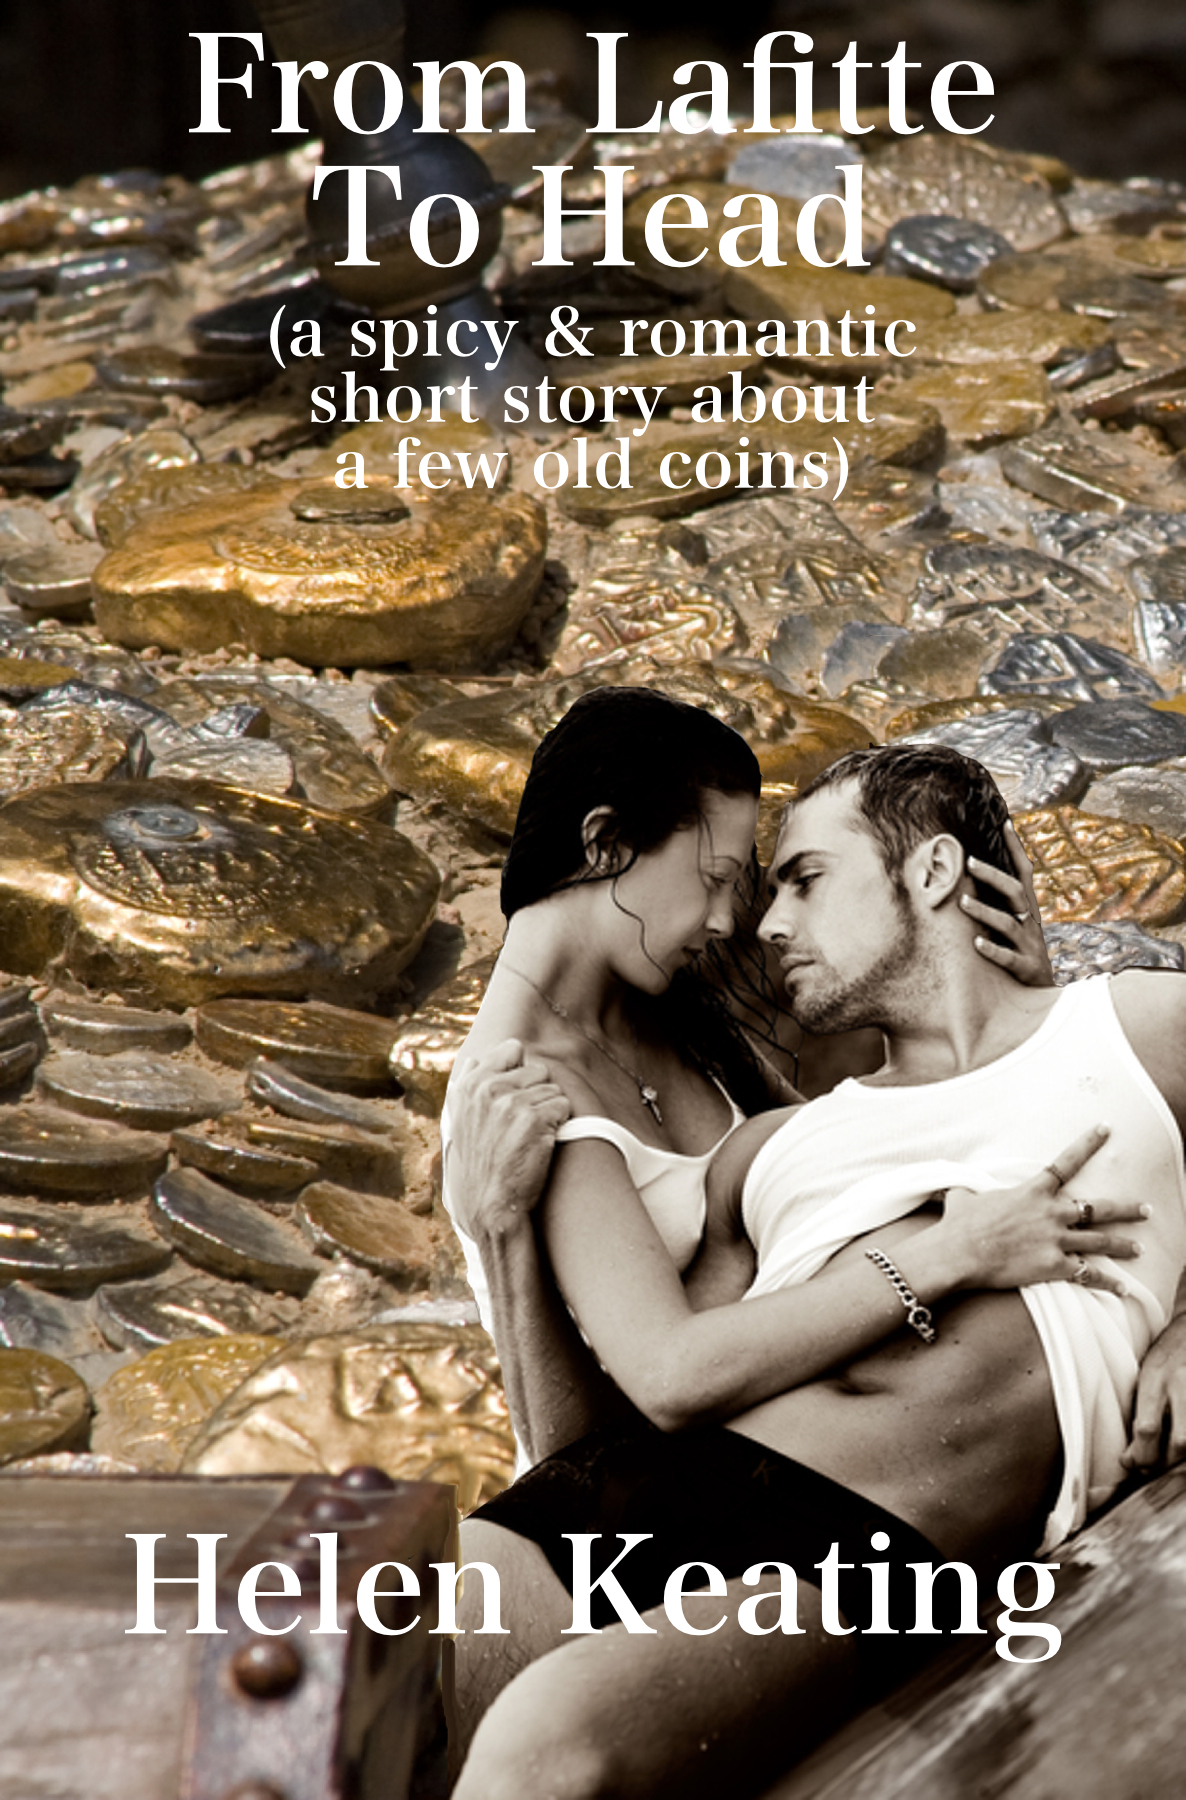 From Lafitte To Head (a spicy & romantic short story about a few old coins)